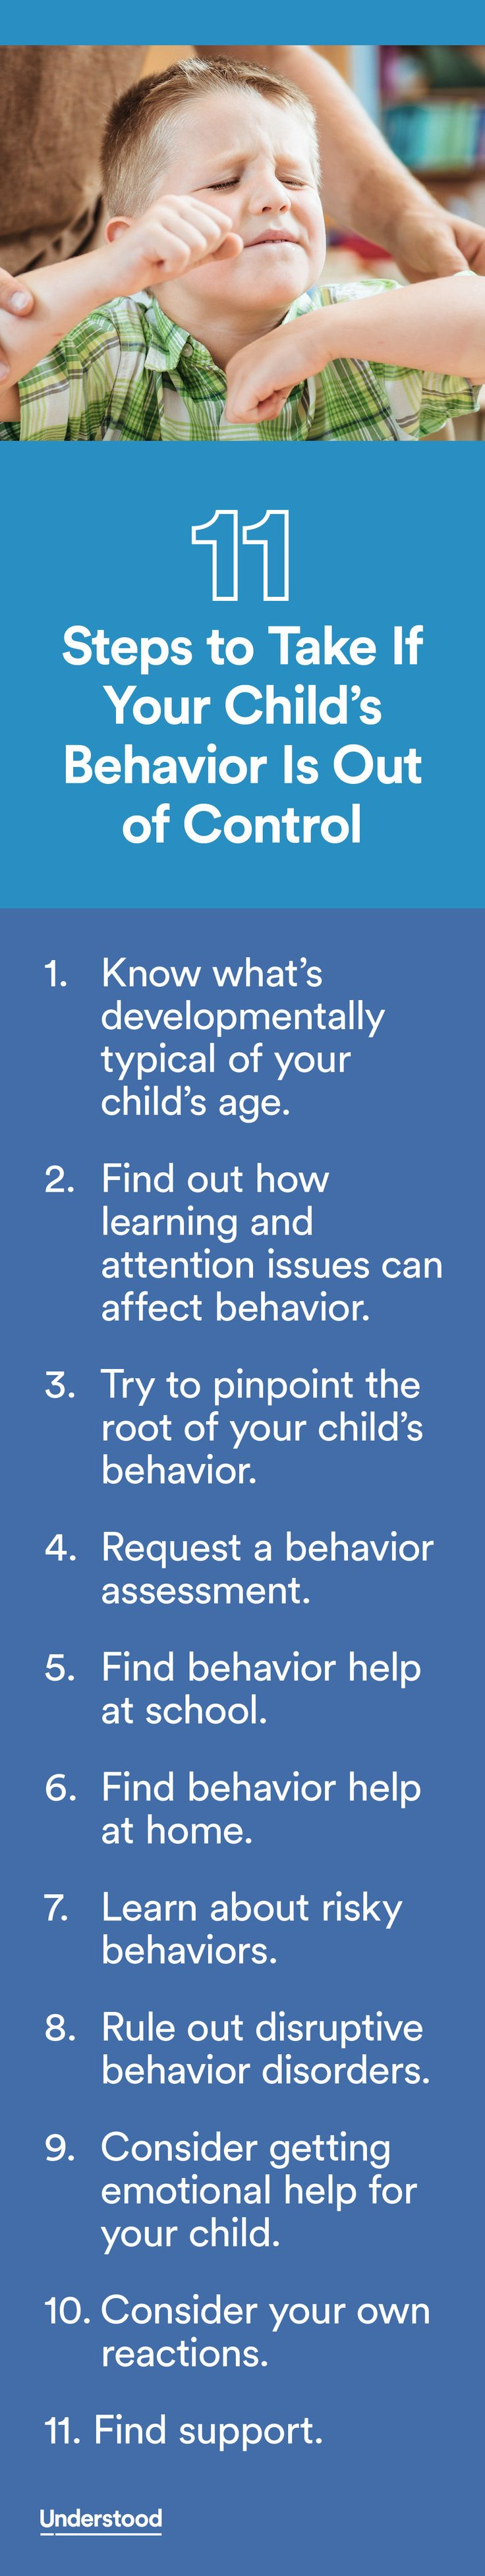 195 best Social and Emotional Skills images on Pinterest